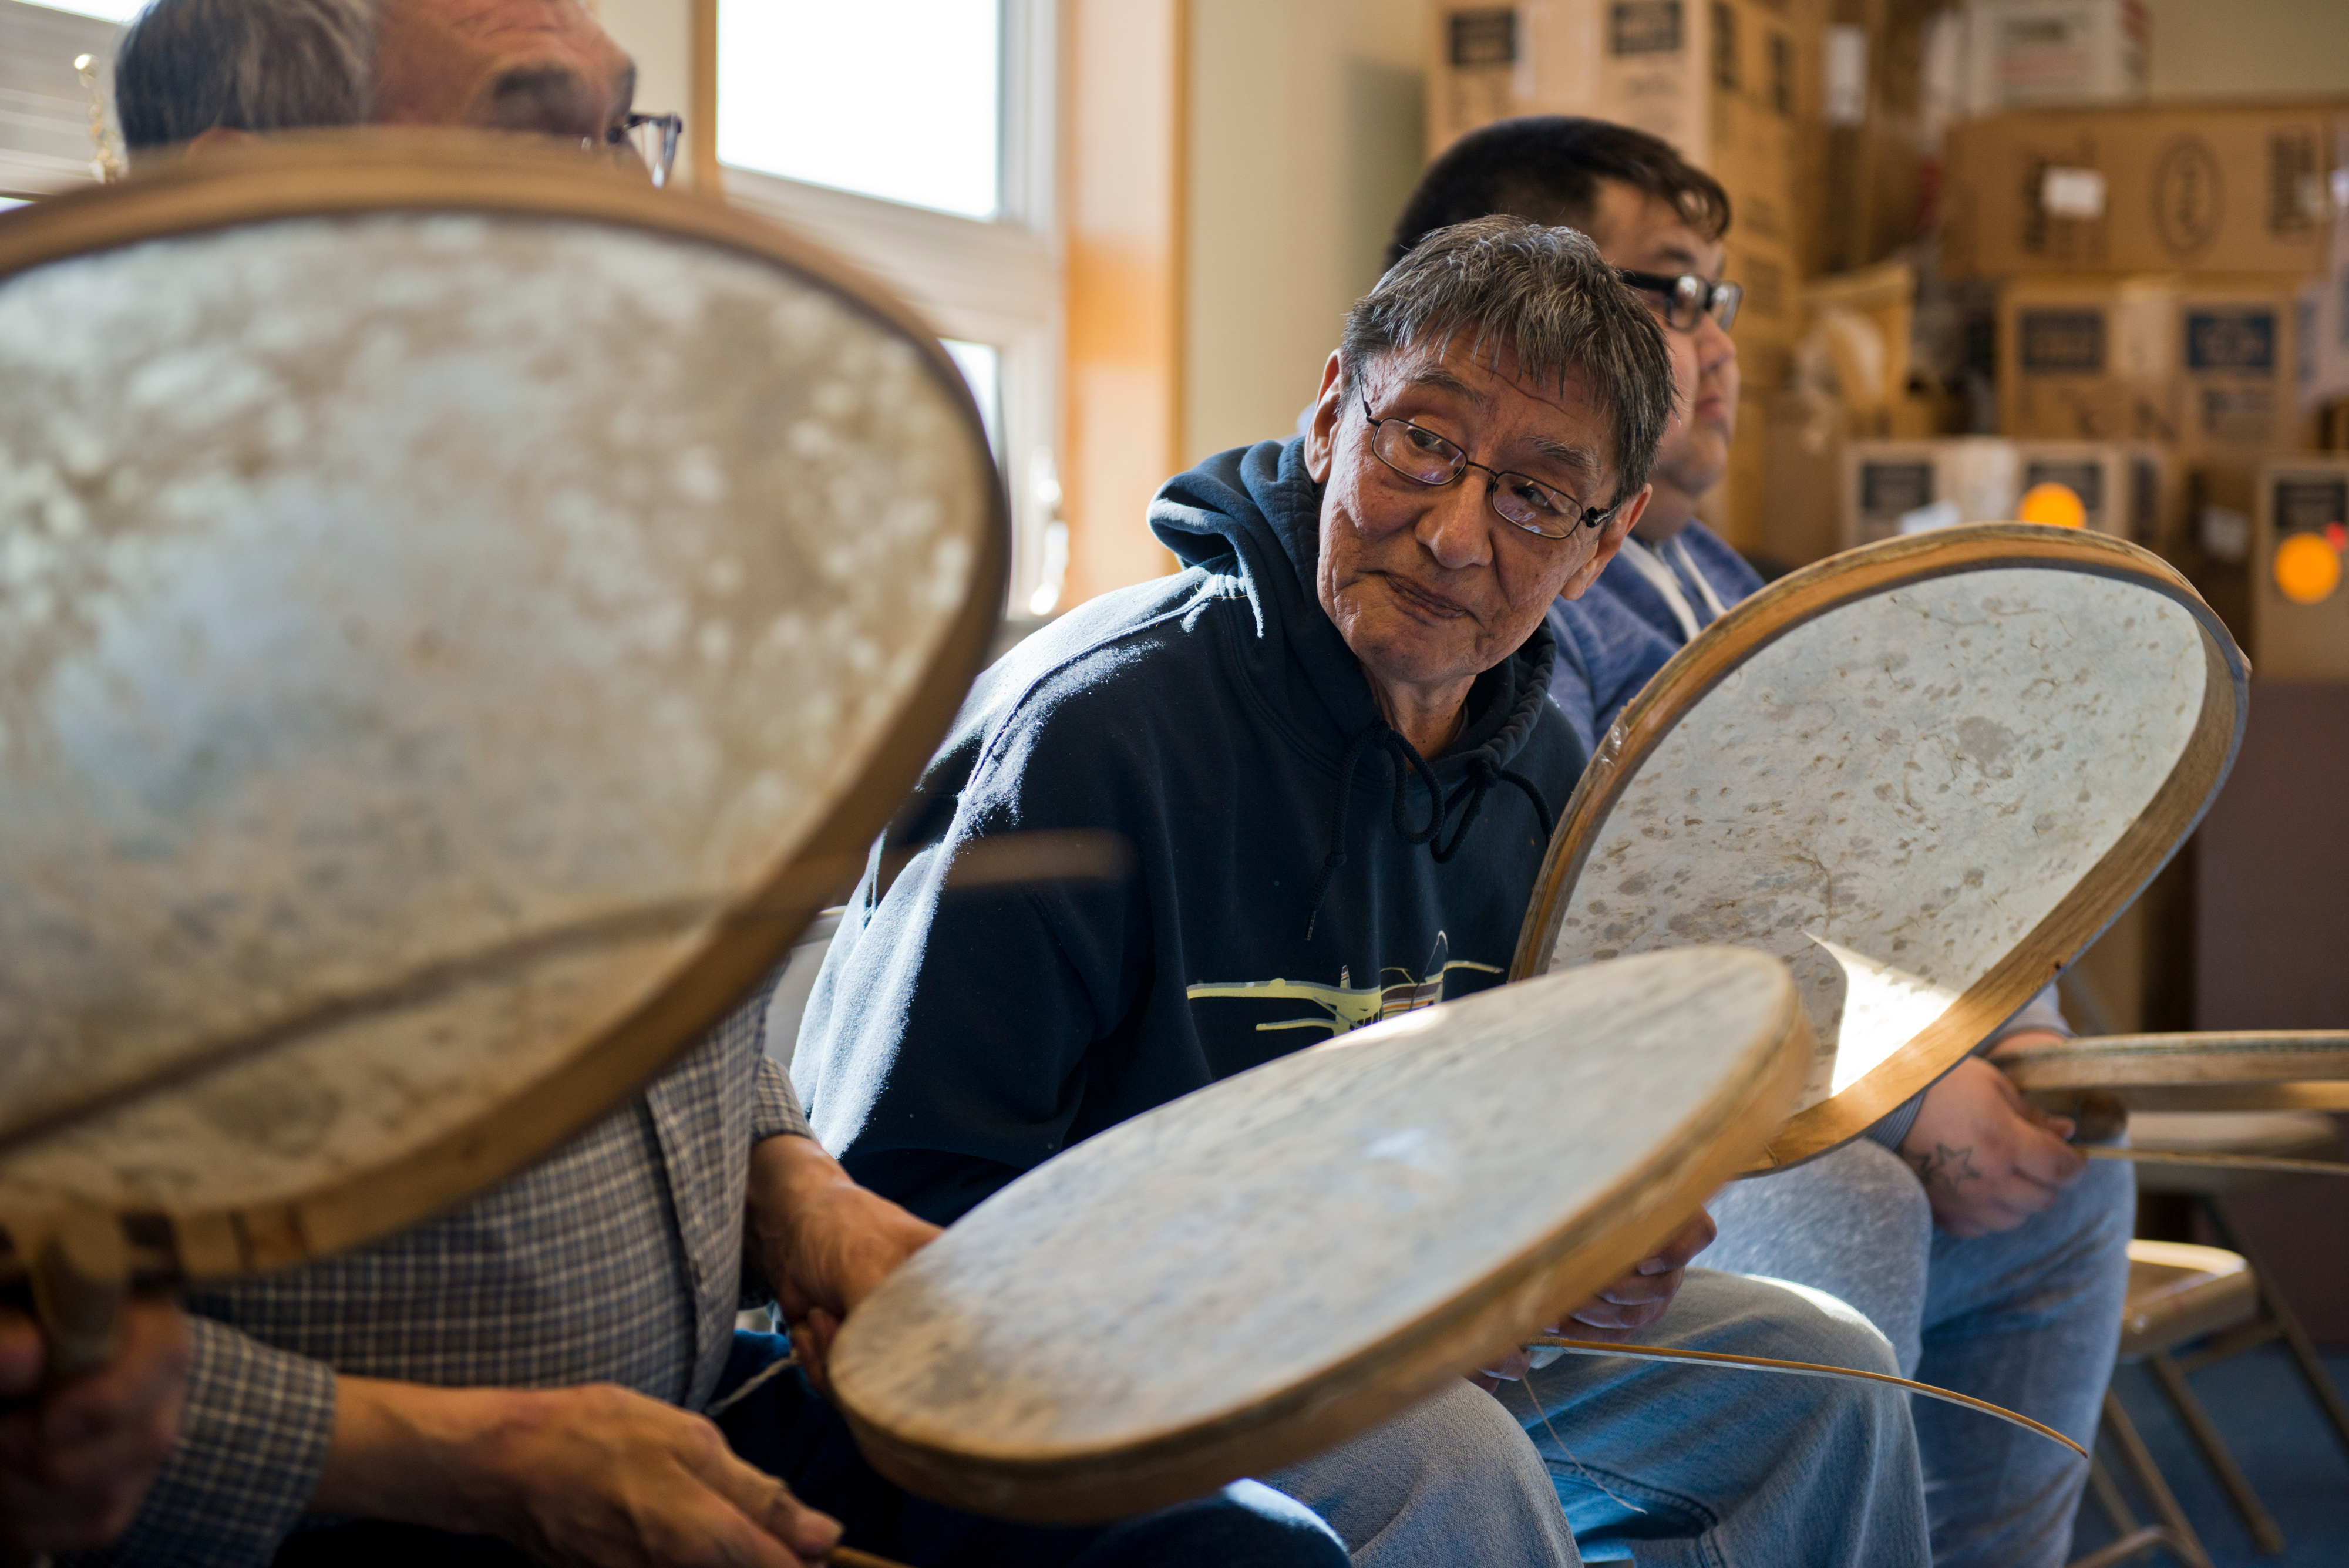 George Noongwook drums with other men at an event in the Native Village of Savoonga building on April 20, 2017. The drums are made with the stomach of walrus. (Marc Lester / Alaska Dispatch News)